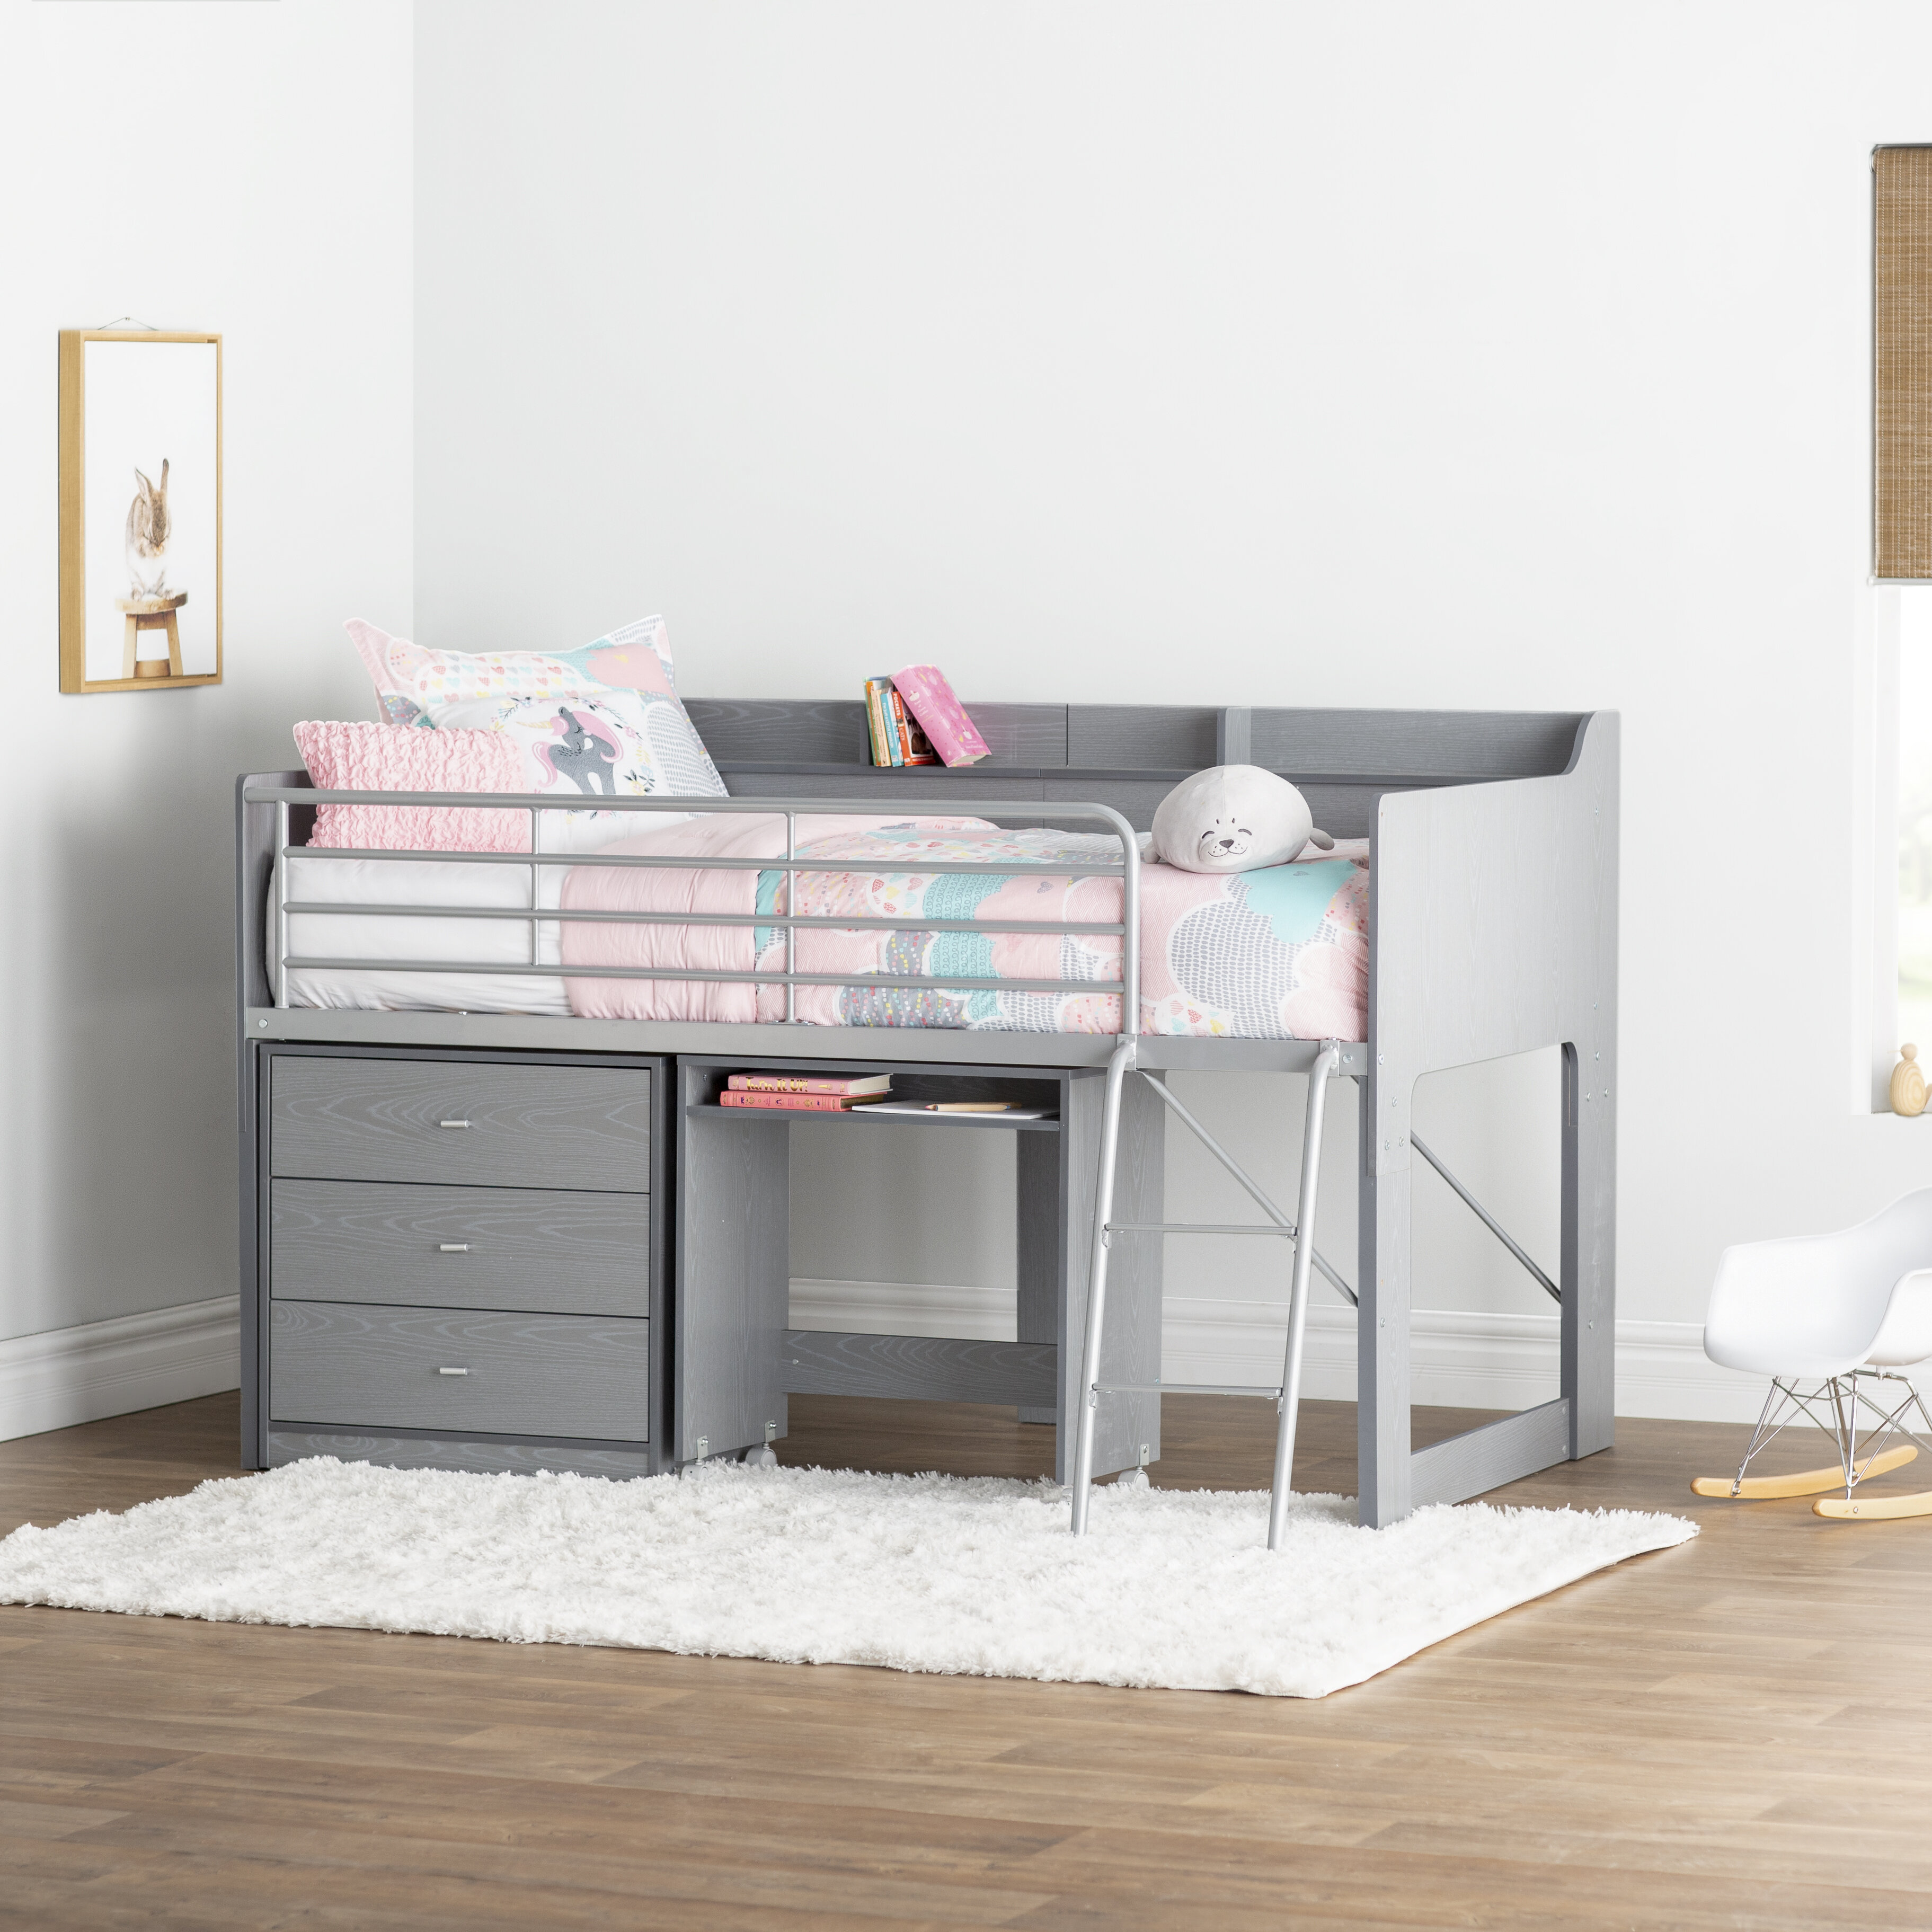 Tremendous Alcester Twin Low Loft Bed With Desk And Storage Home Interior And Landscaping Ponolsignezvosmurscom